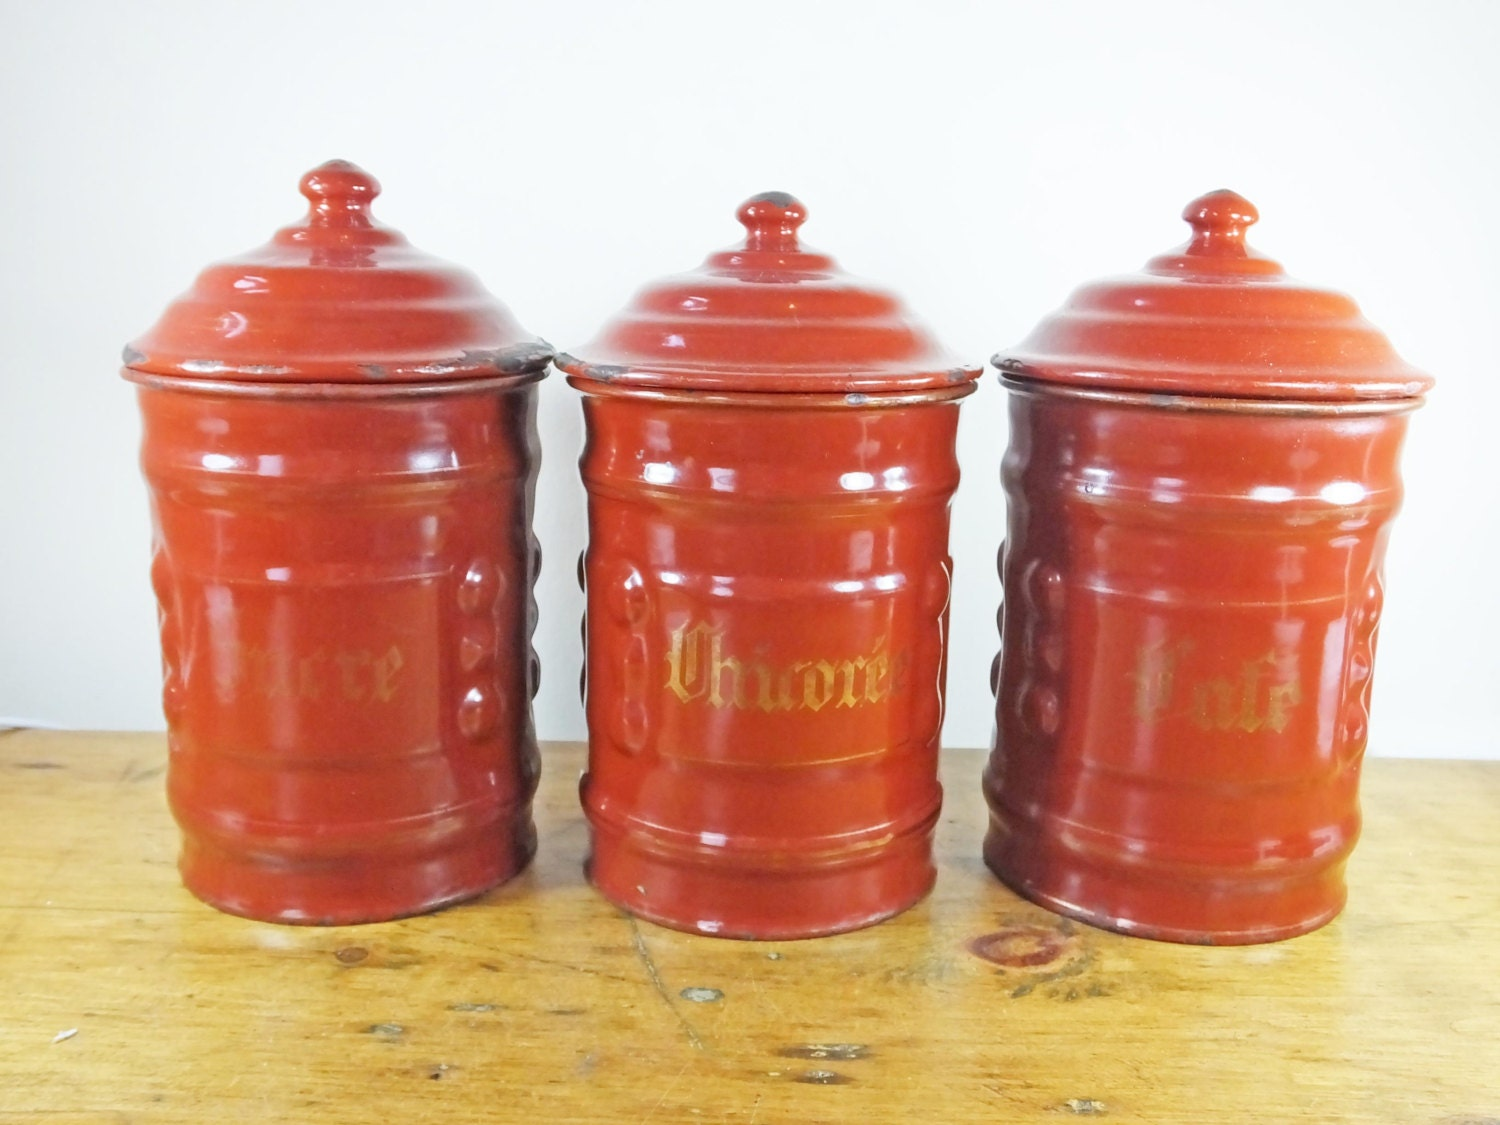 vintage french enamel kitchen canisters caddies tea coffee red